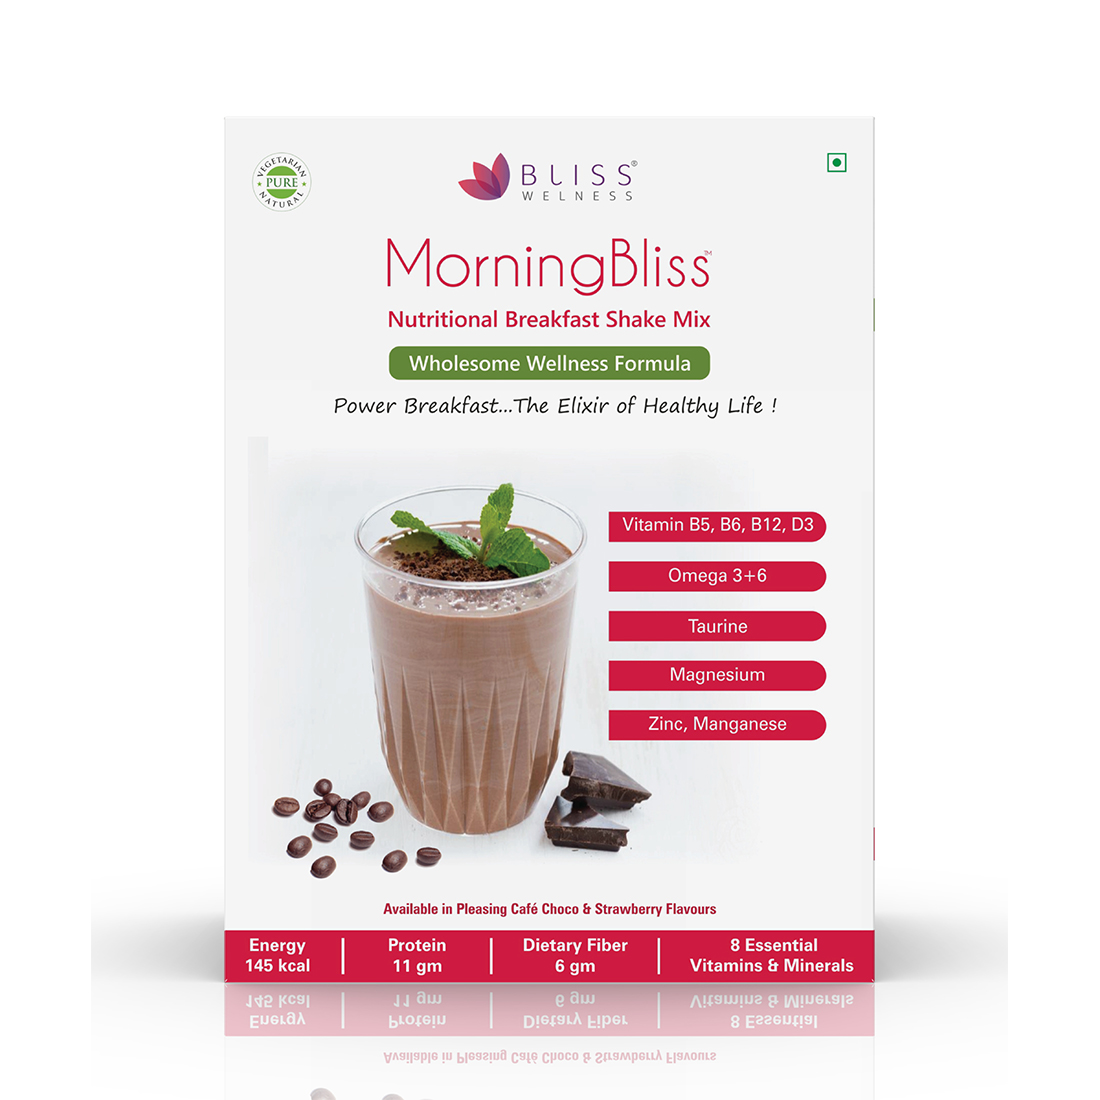 Bliss Welness 'MorningBliss' Nutritional Breakfast Shake Mix – 12 Servings Pack